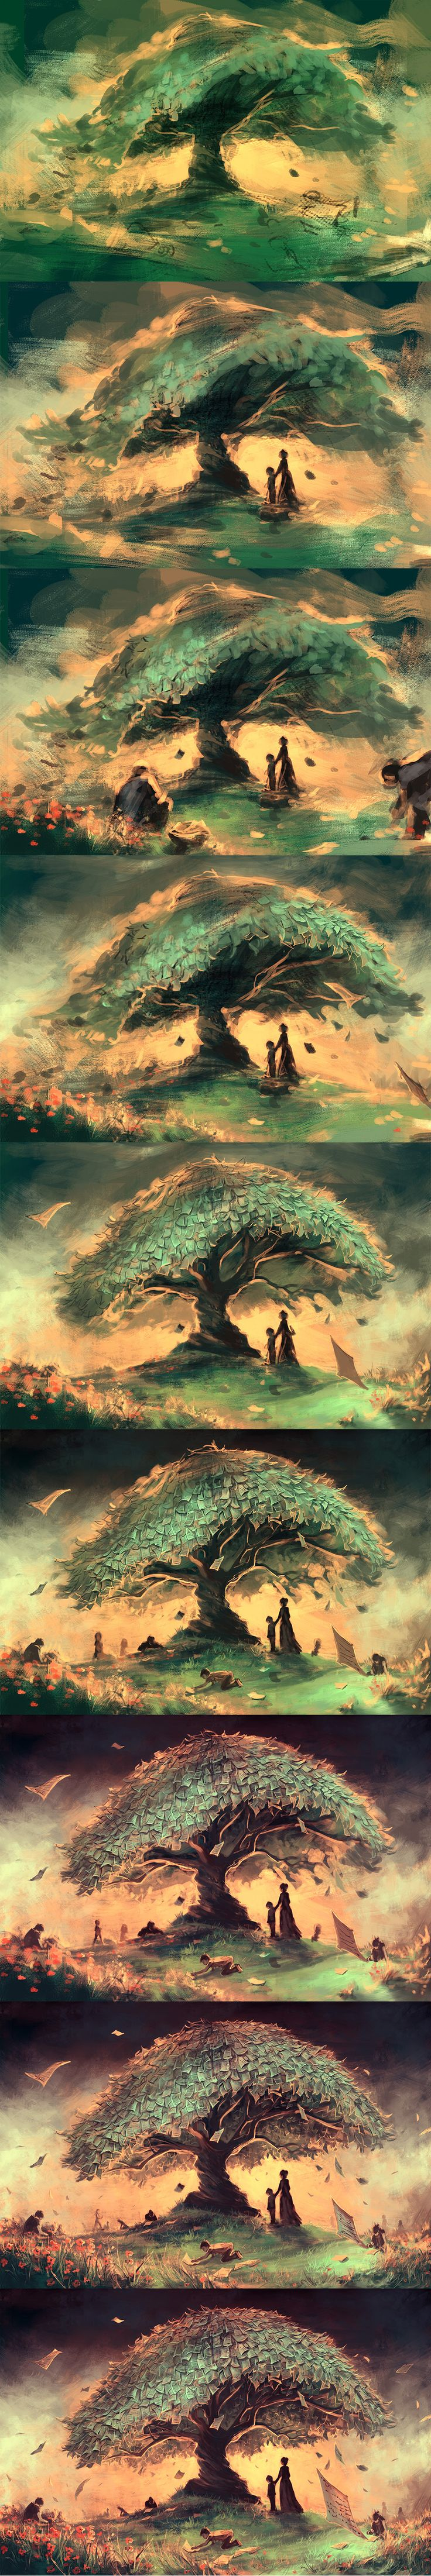 WIP of why don't you listen to the taleteller tree by AquaSixio.deviantart.com on @deviantART